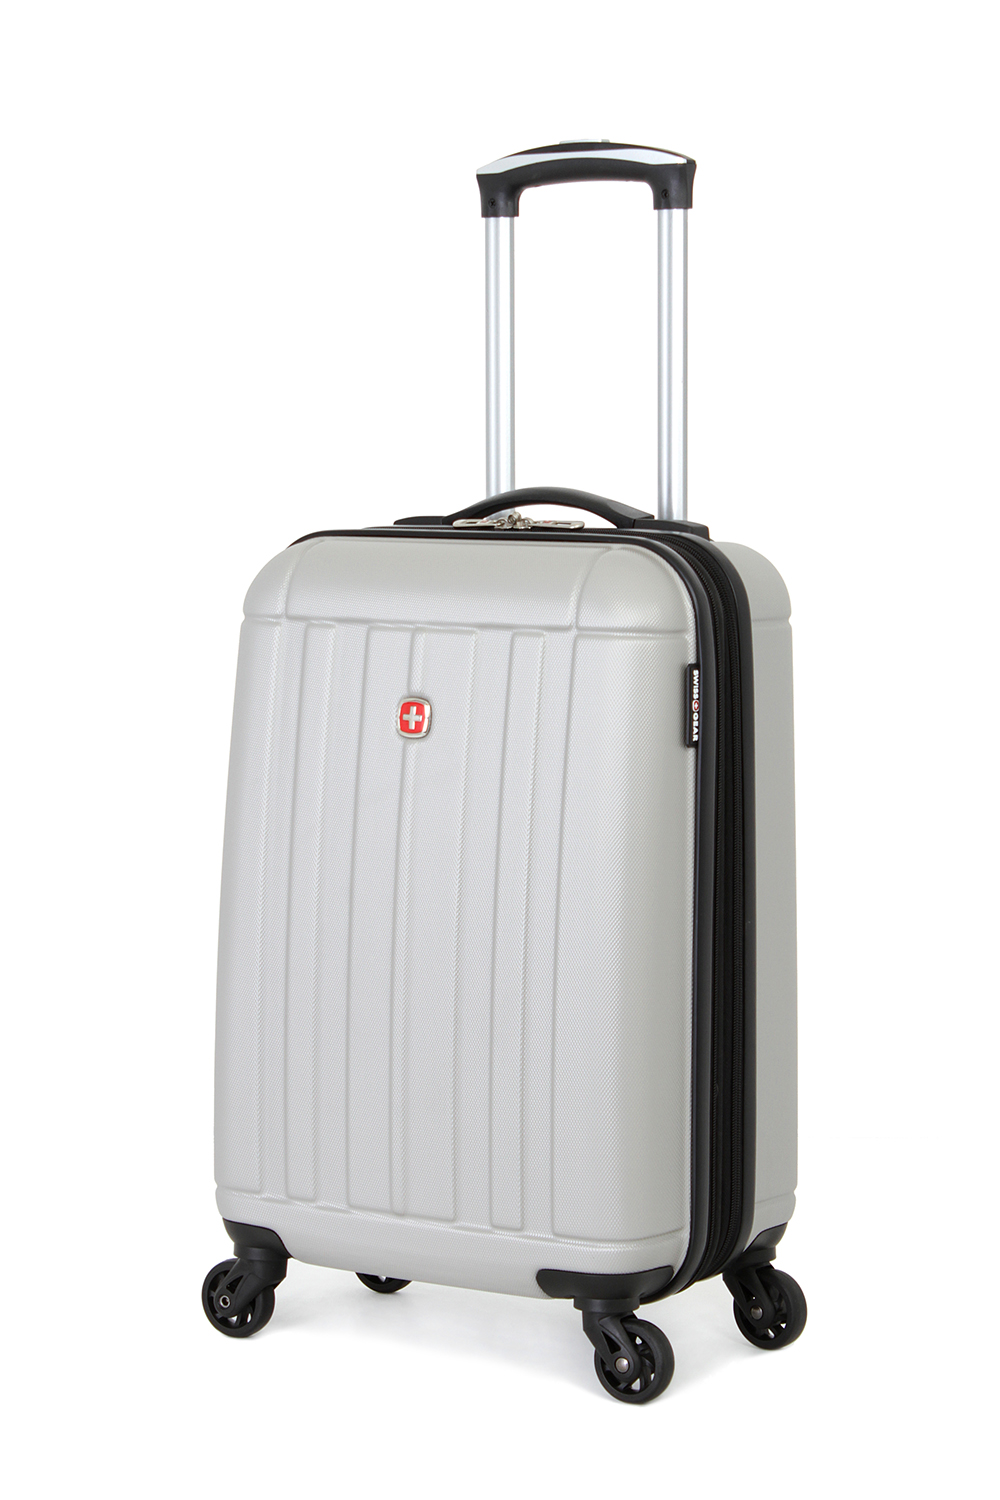 SWISSGEAR 6297 19 Expandable Hardside Spinner - Silver Luggage